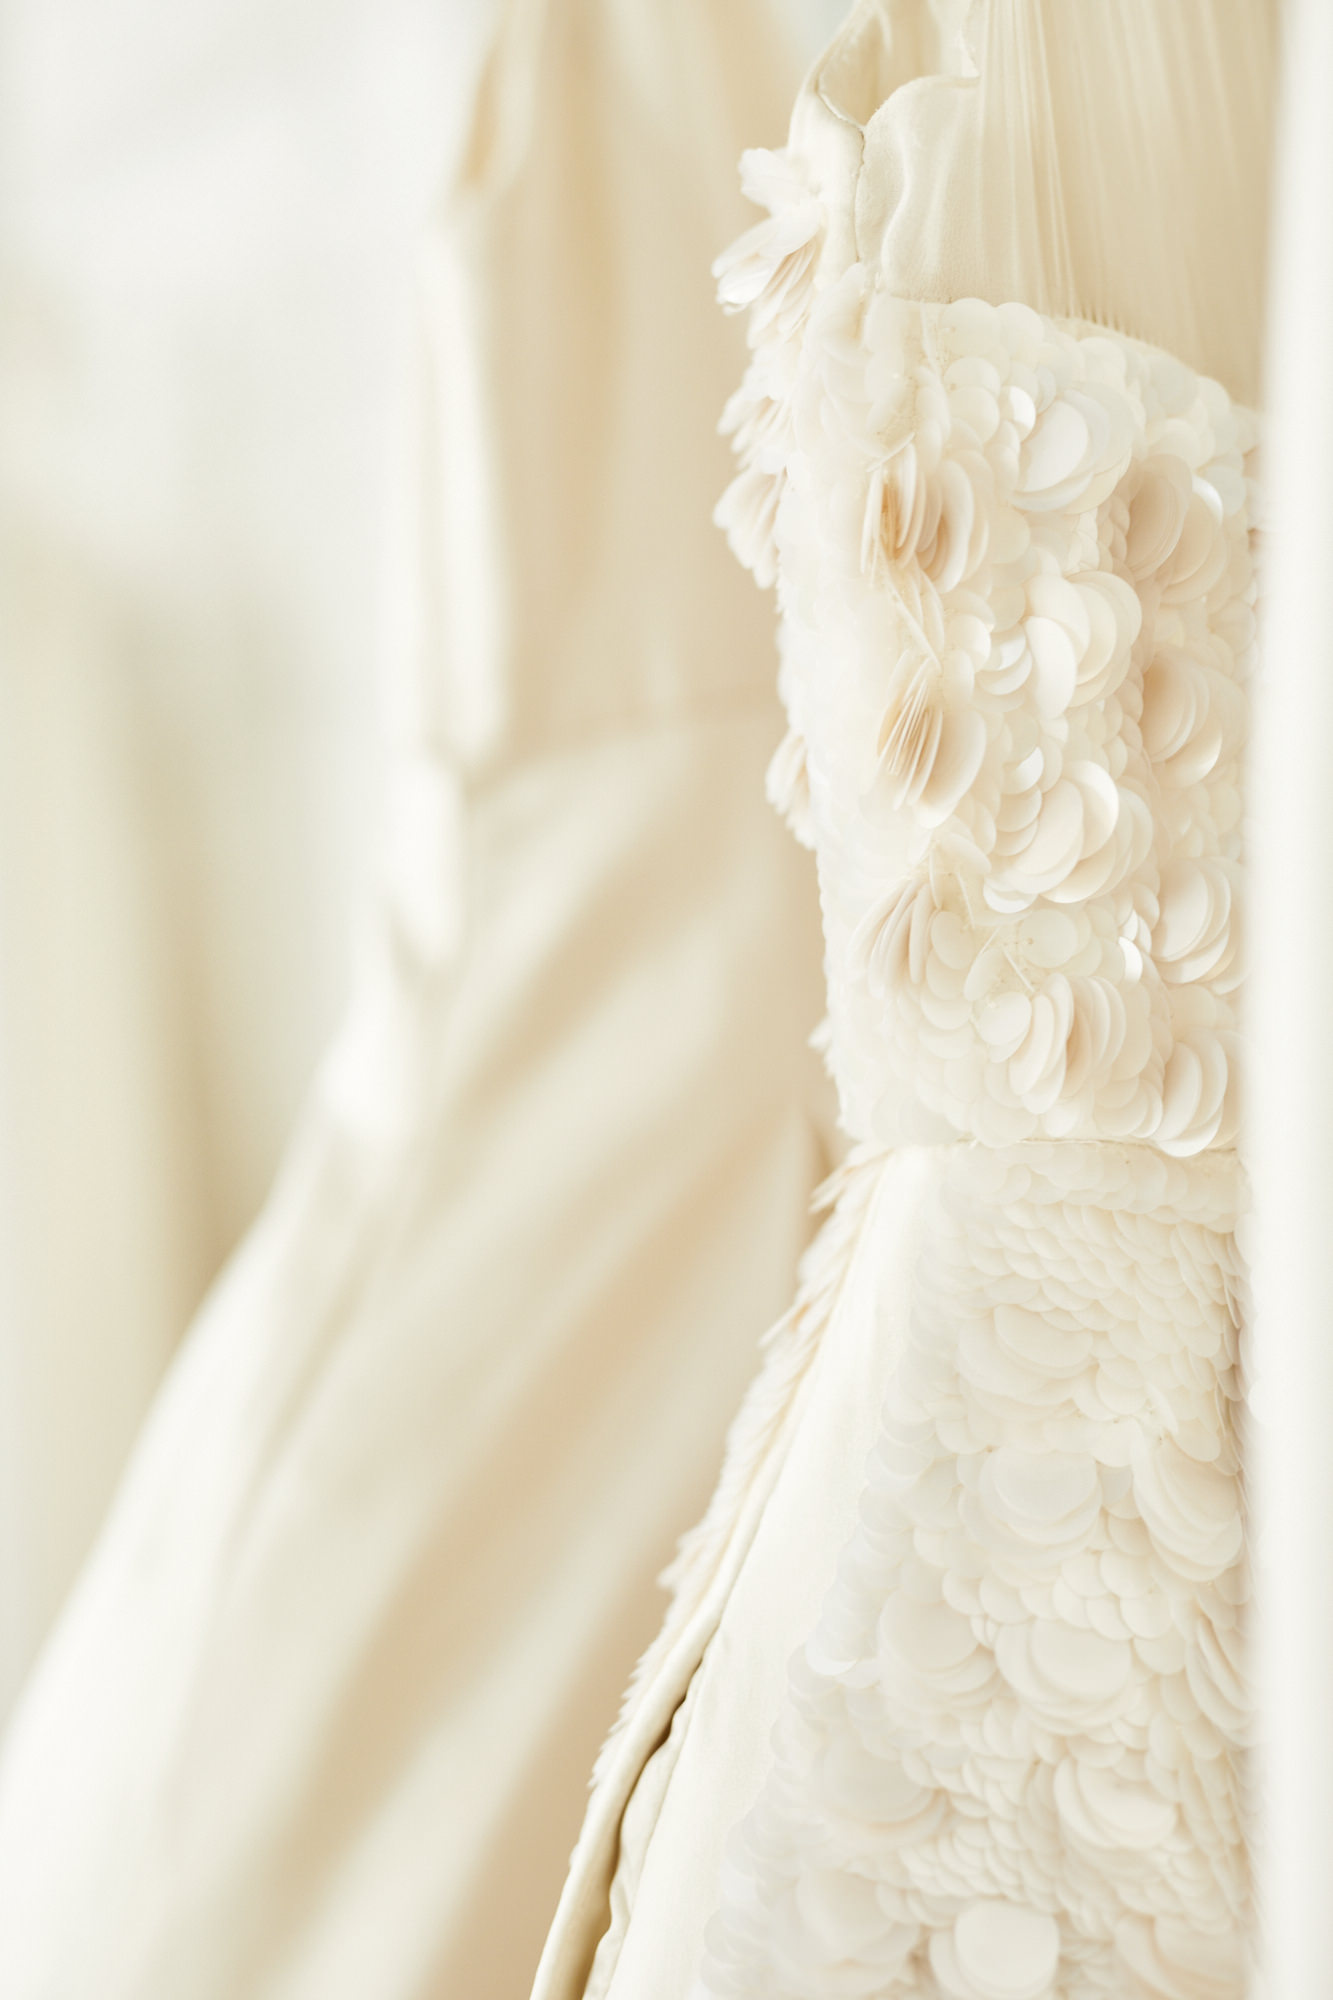 Lakum-Showroom-dress-close-up.jpg